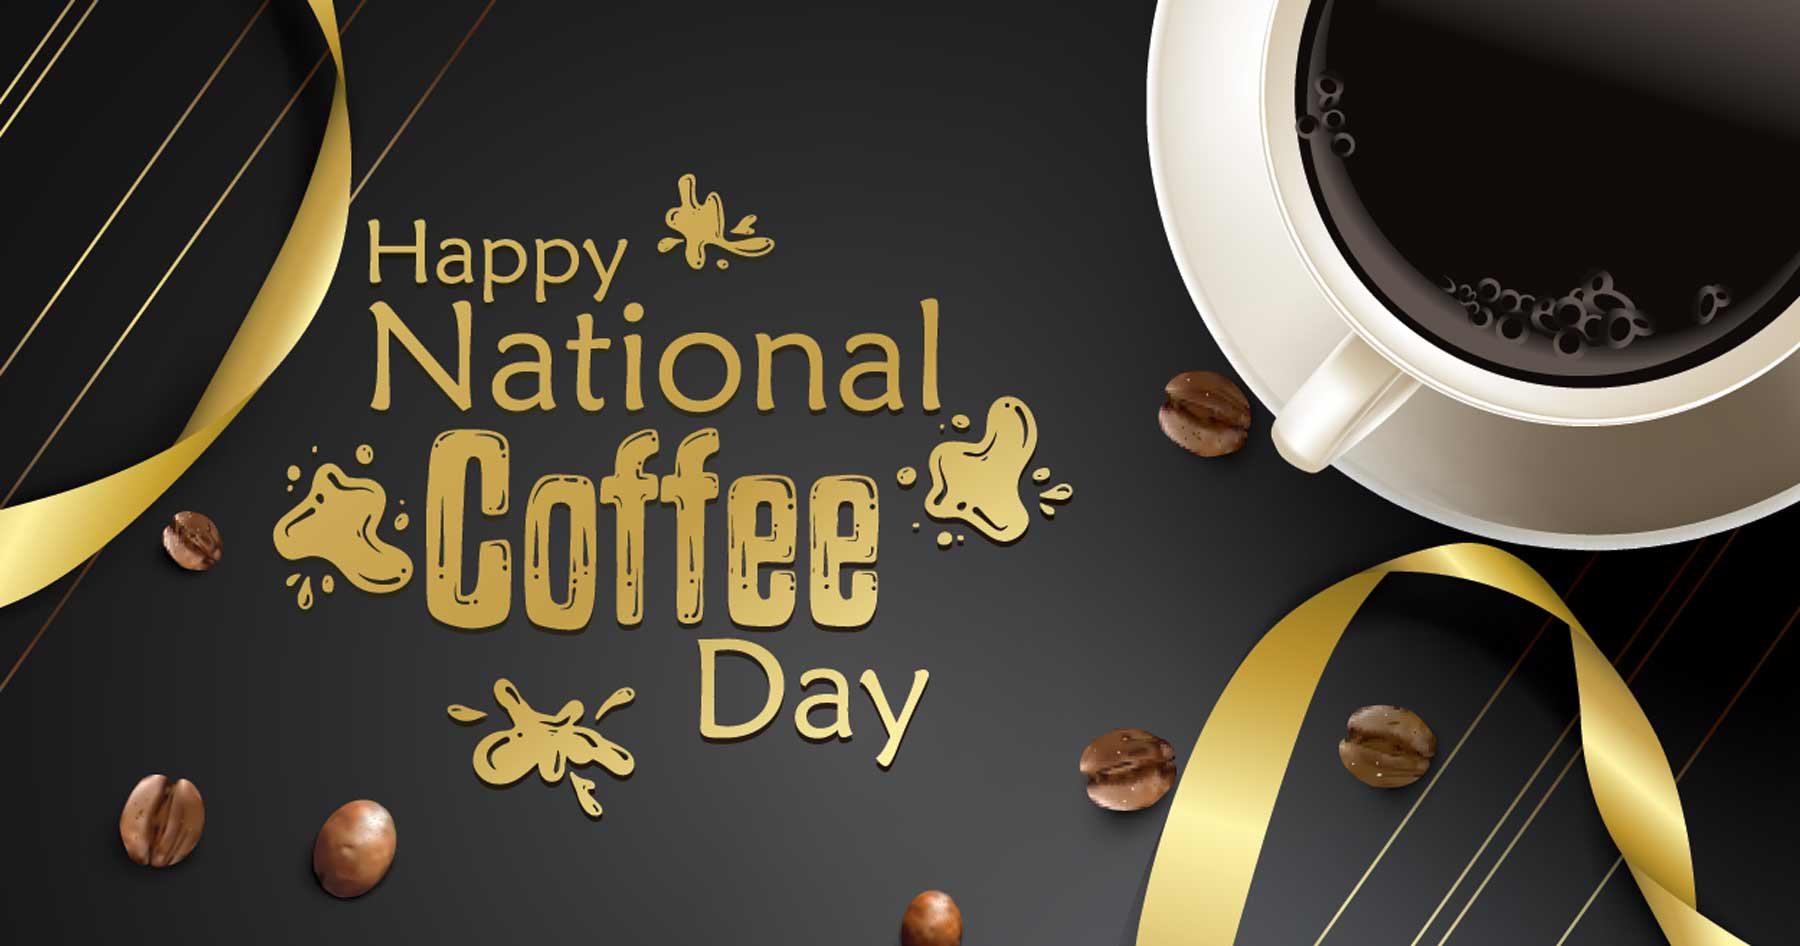 11 C-Stores Offering Free Java on National Coffee Day 2020